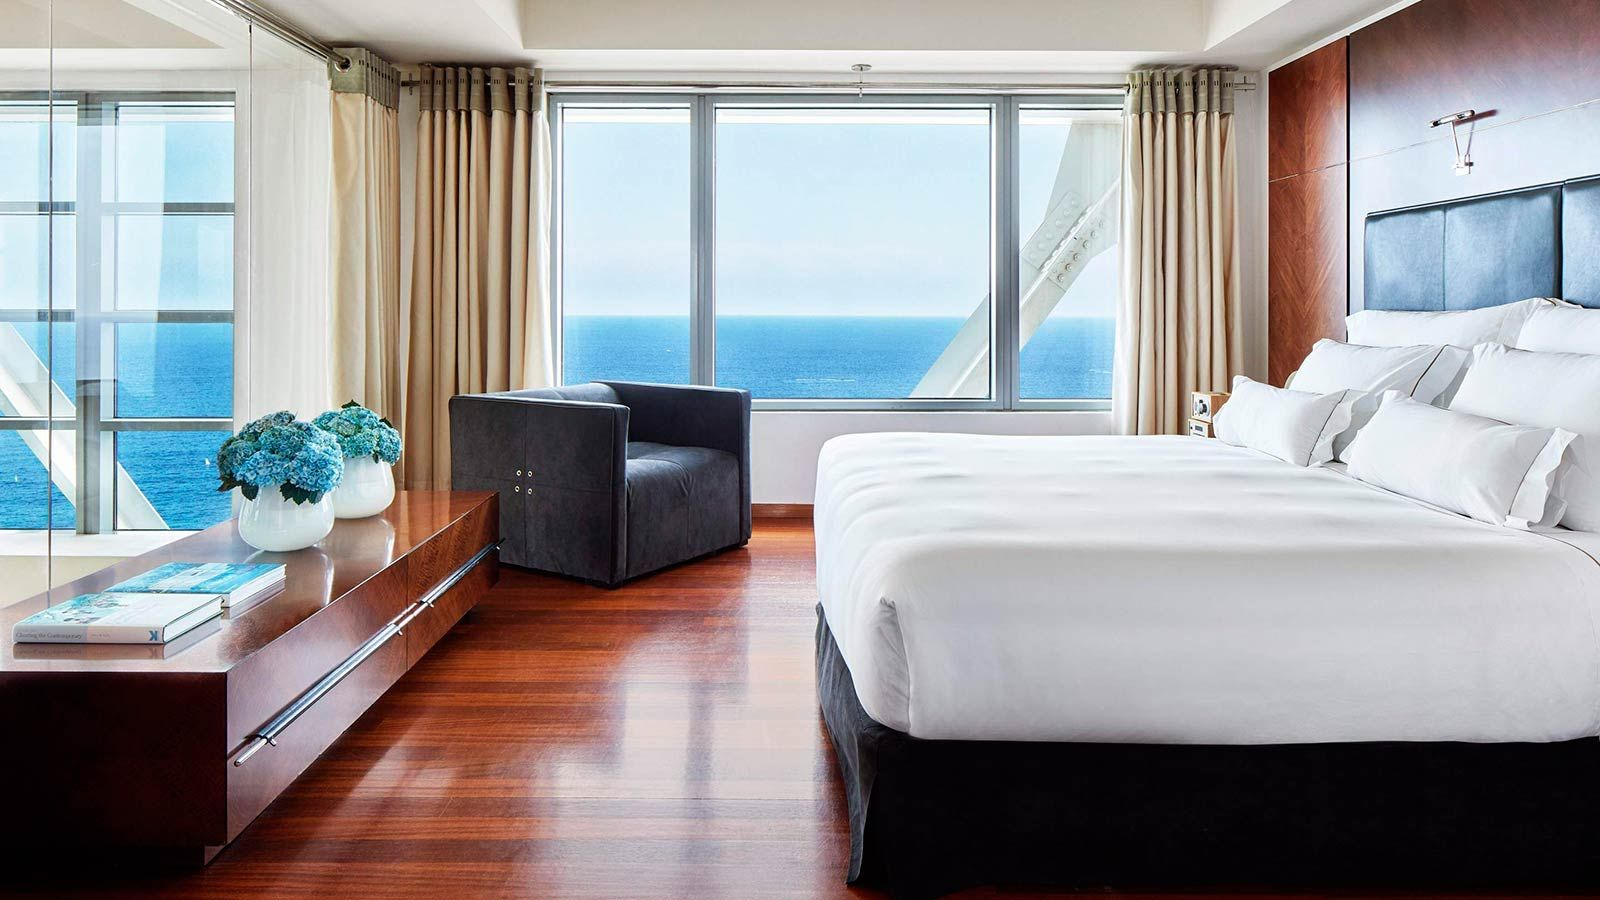 Hotel Arts Barcelona Hotel Room In Barcelona With Sea View